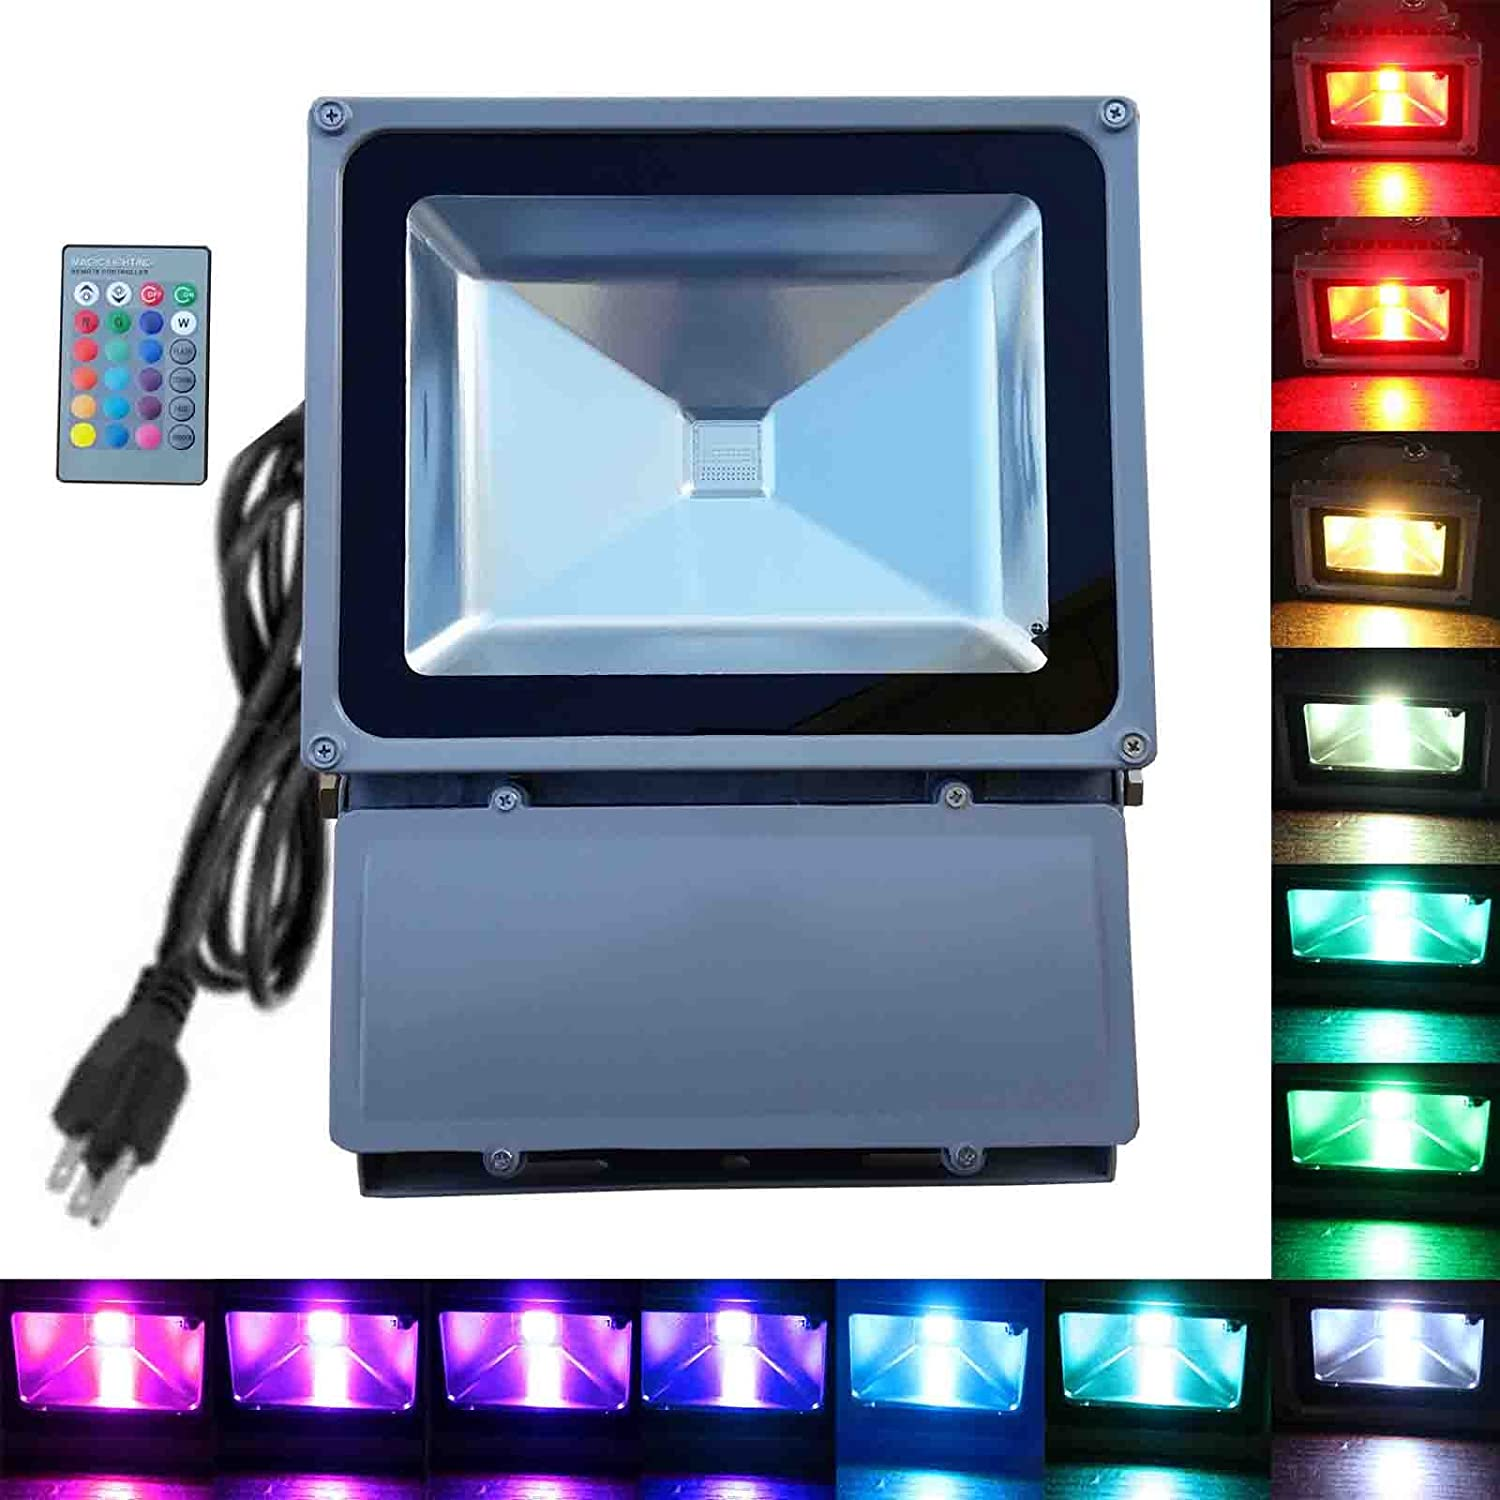 100w rgb flood light tdltek 100w rgb color changing led flood 100w rgb flood light tdltek 100w rgb color changing led flood light spotlightlandscape lampoutdoor security light with memory function and remote workwithnaturefo